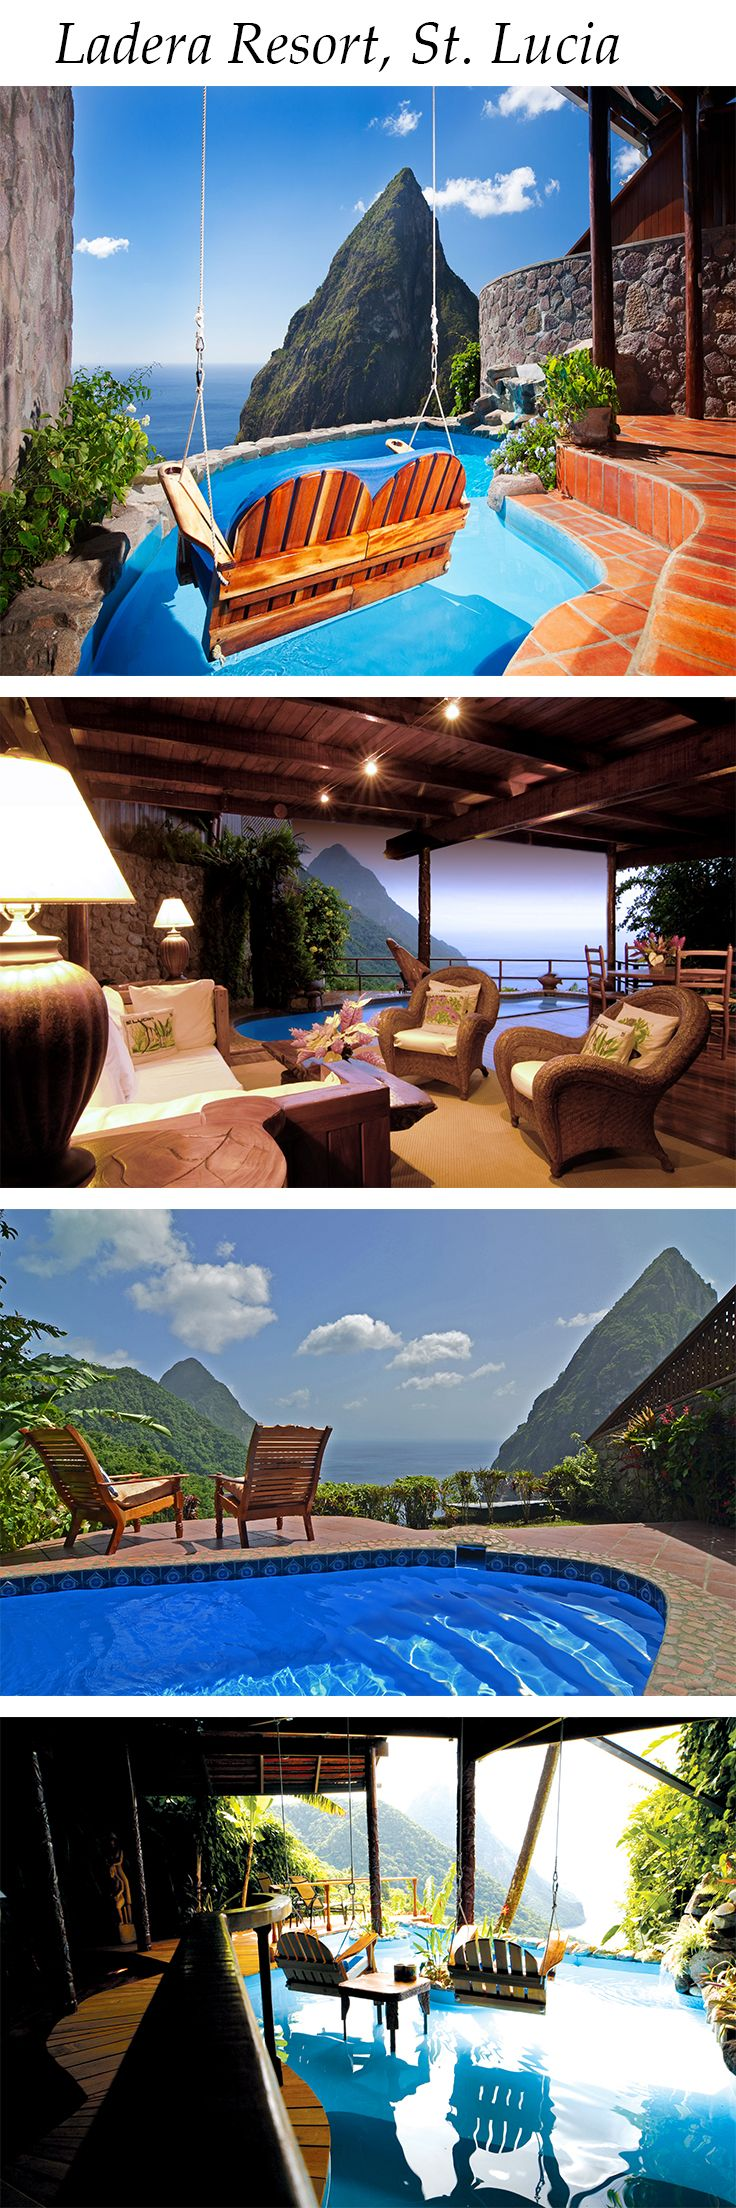 I must visit this place in my life time!!   Ladera Resort, St. Lucia